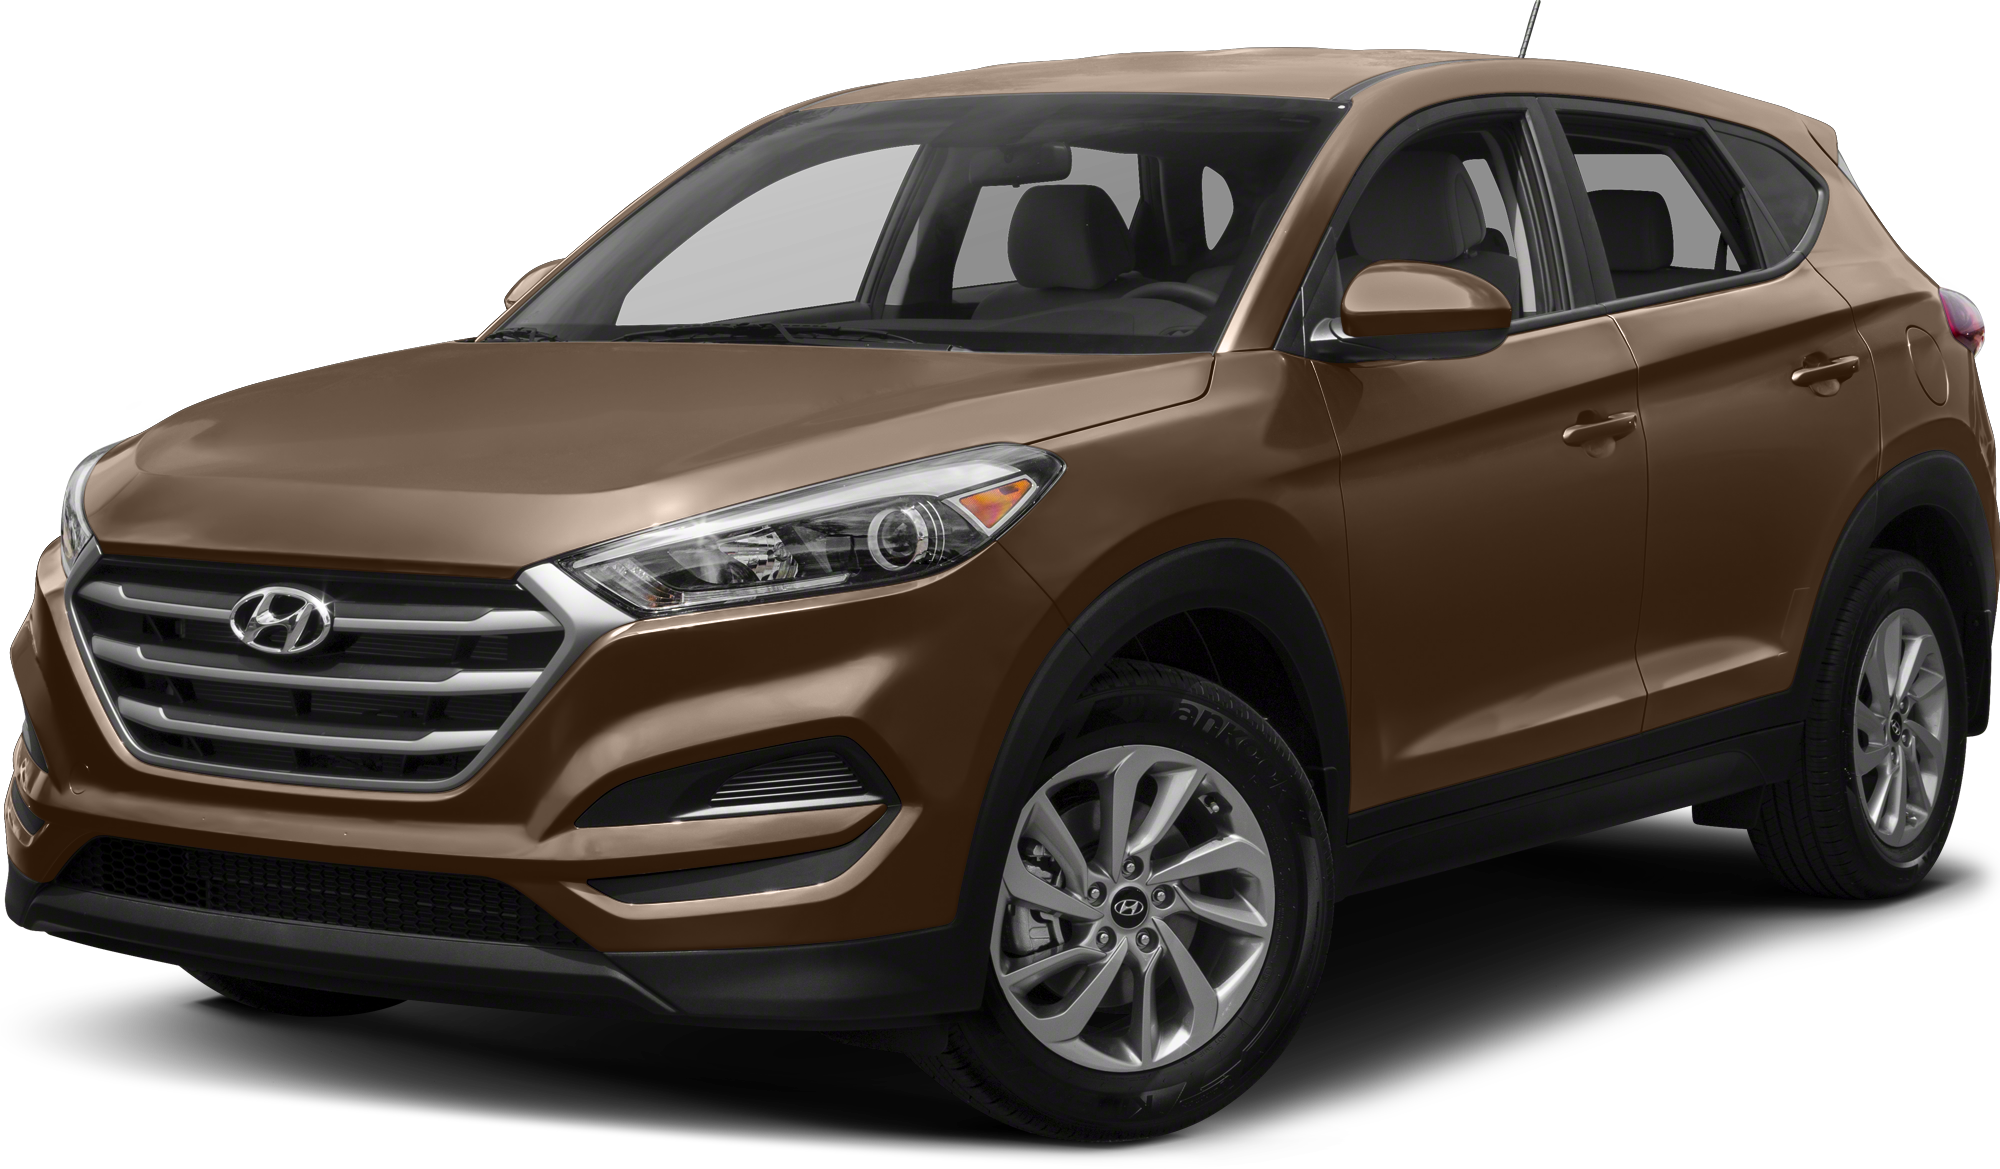 ioniq deals design oh columbus hyundai lease inoiq prices htm new best offers